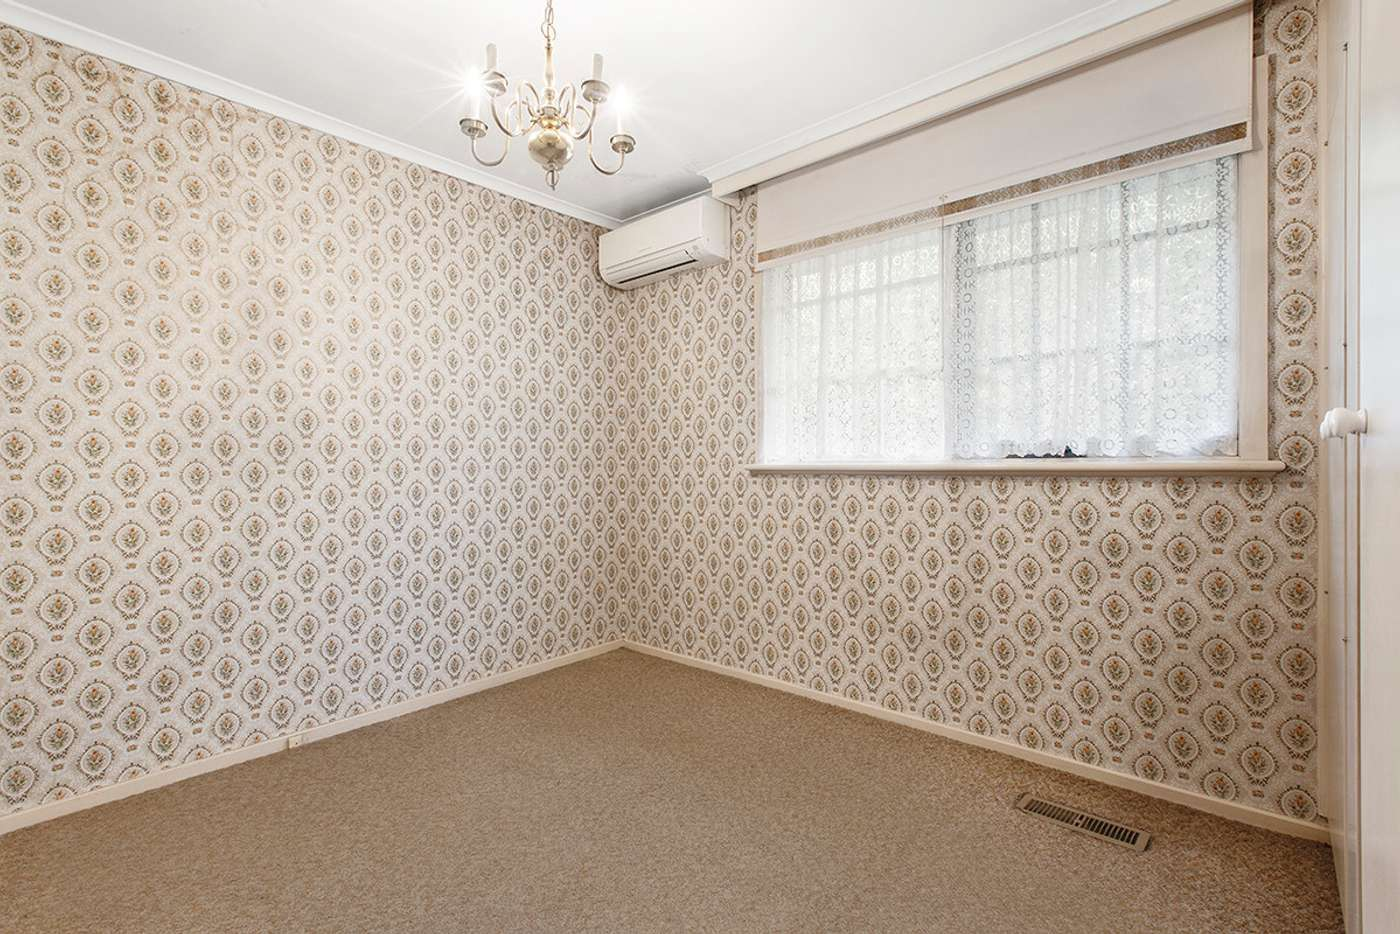 Sixth view of Homely unit listing, 4/4 Ash Grove, Malvern East VIC 3145